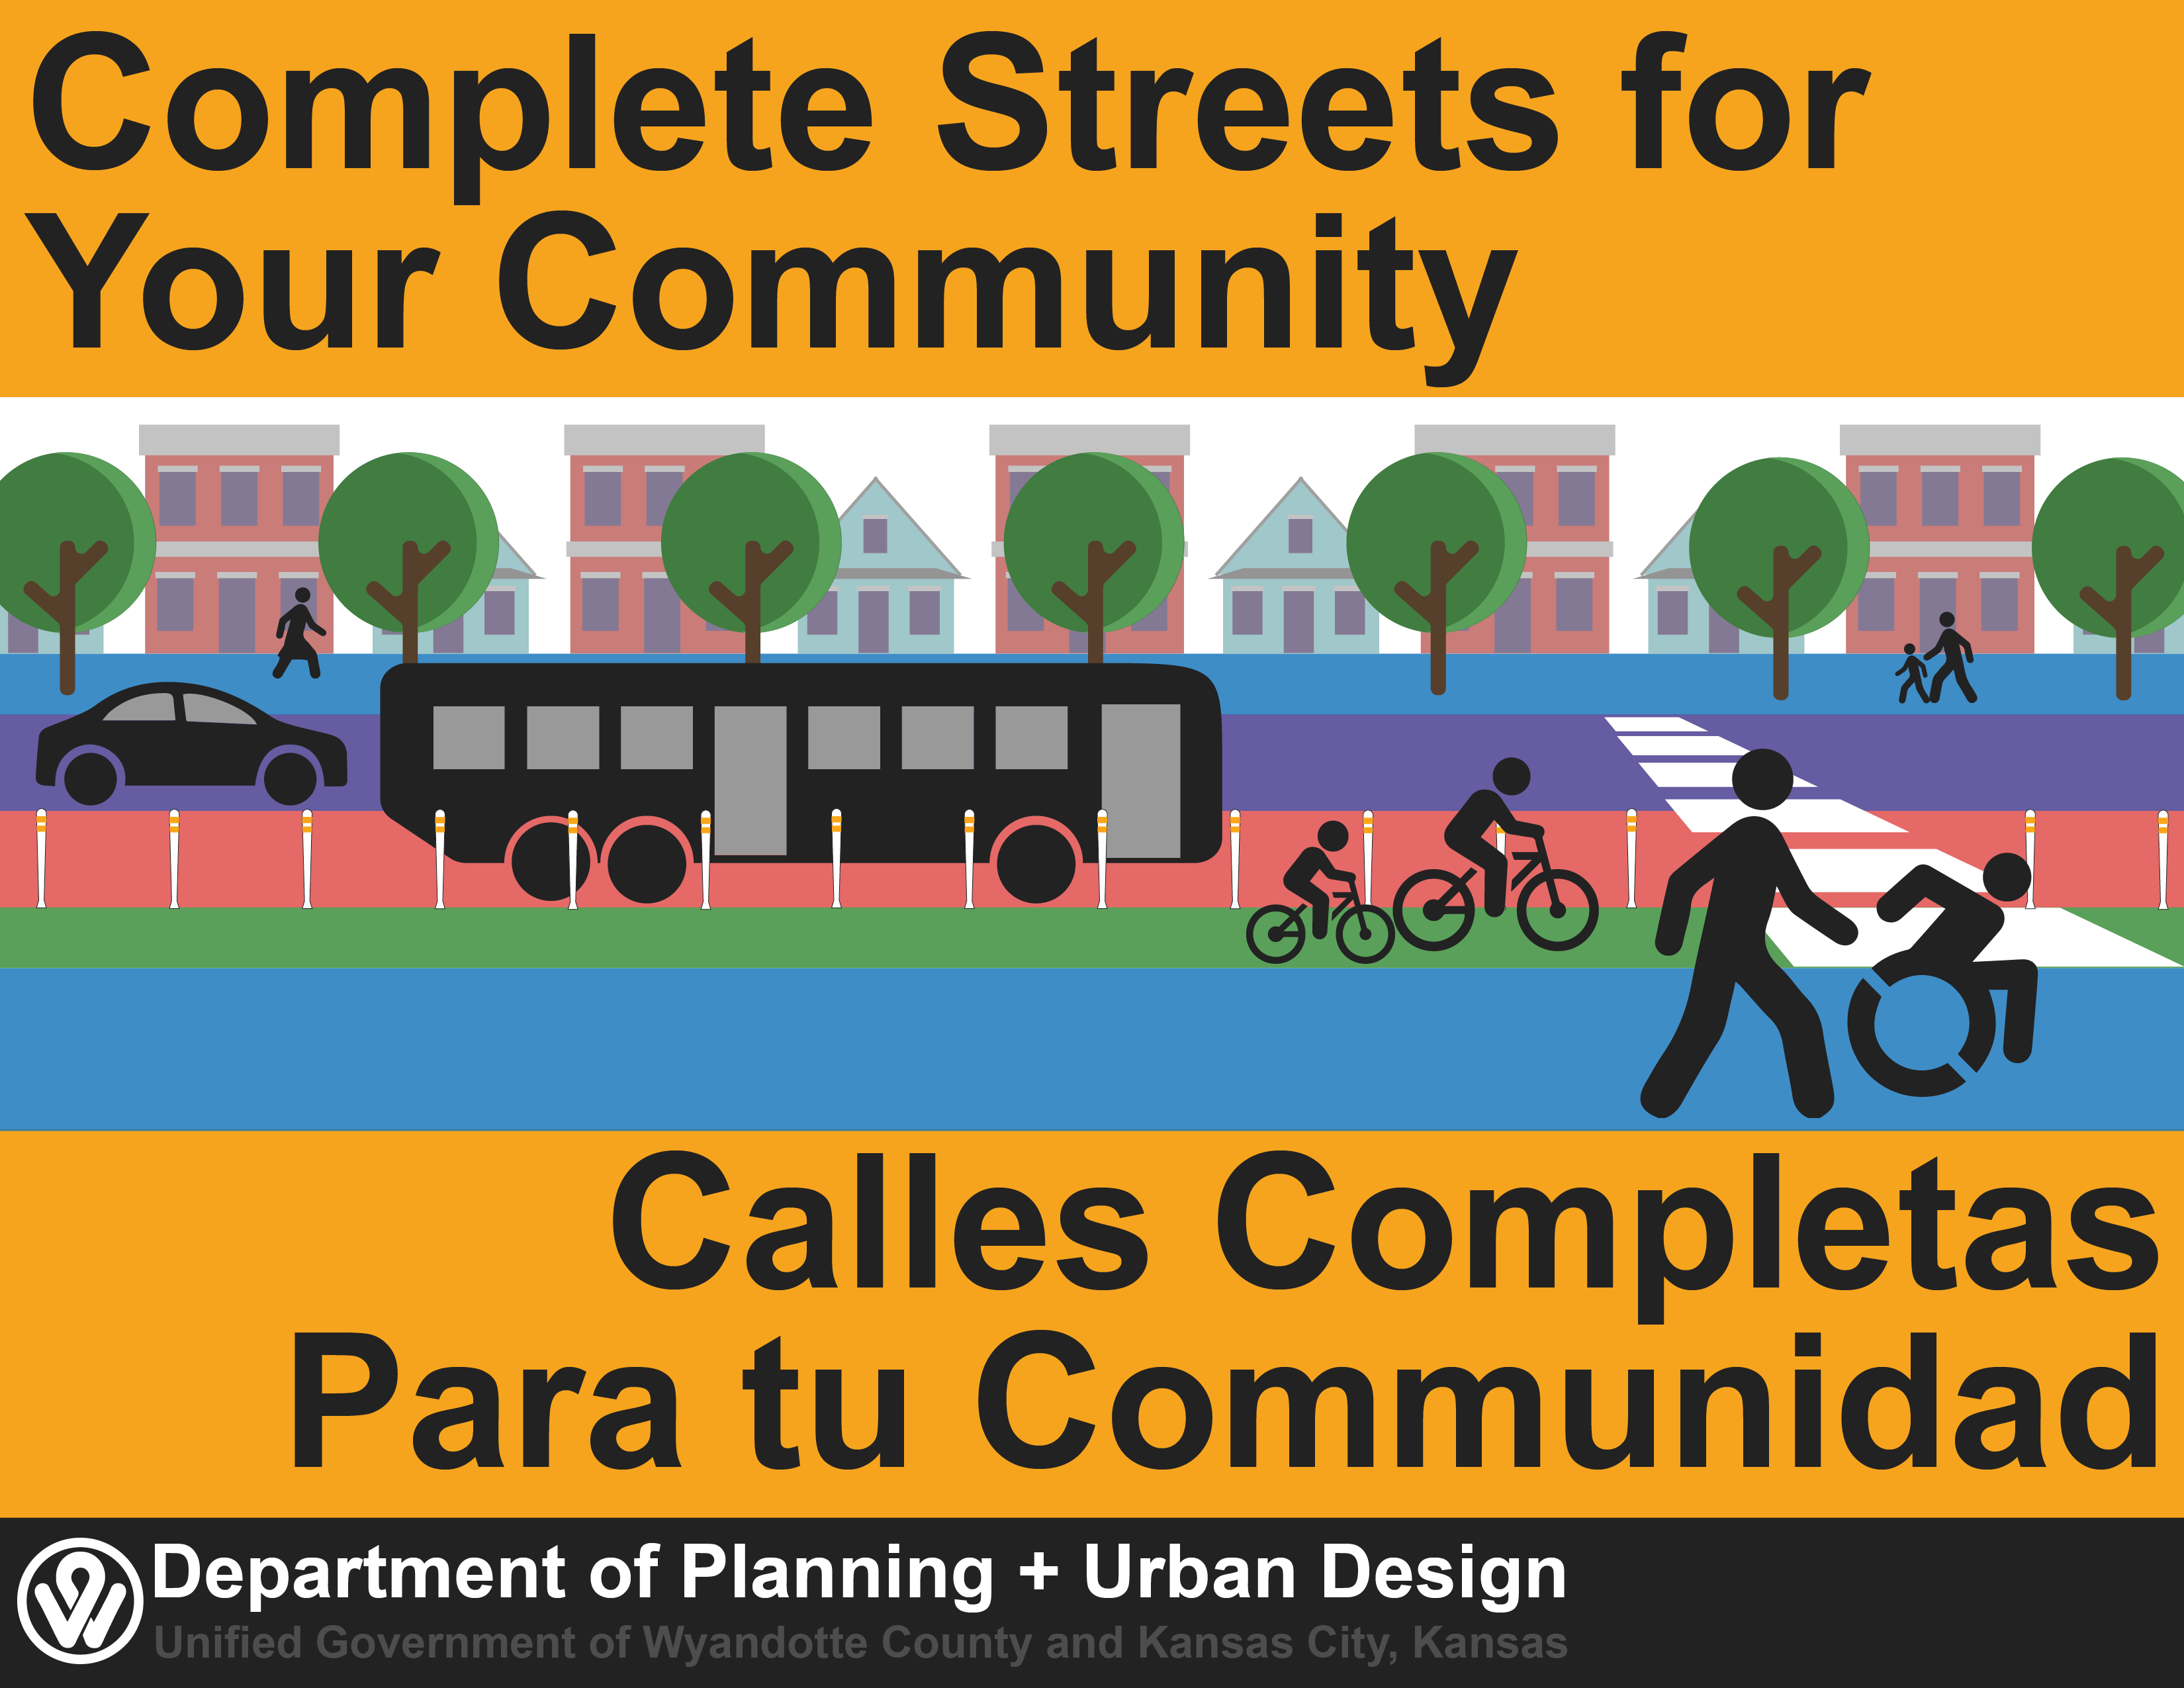 Complete Streets for Your Community- Online Survey